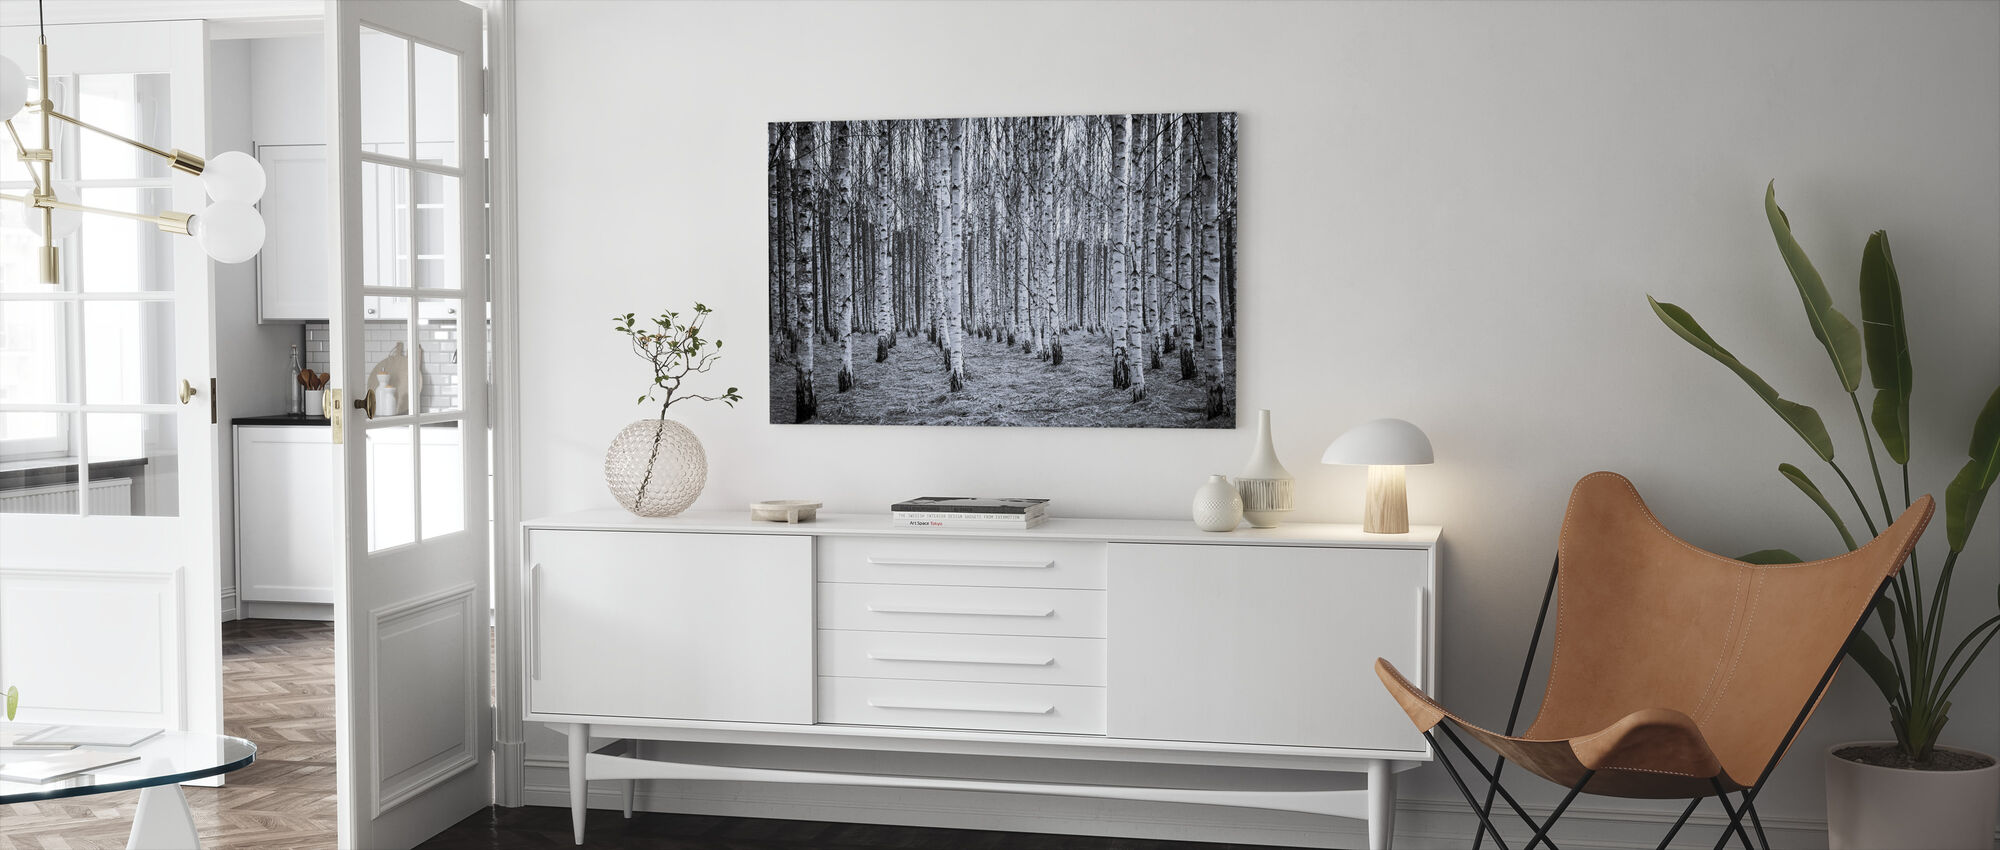 Birch Forest Black & White - Canvas print - Living Room